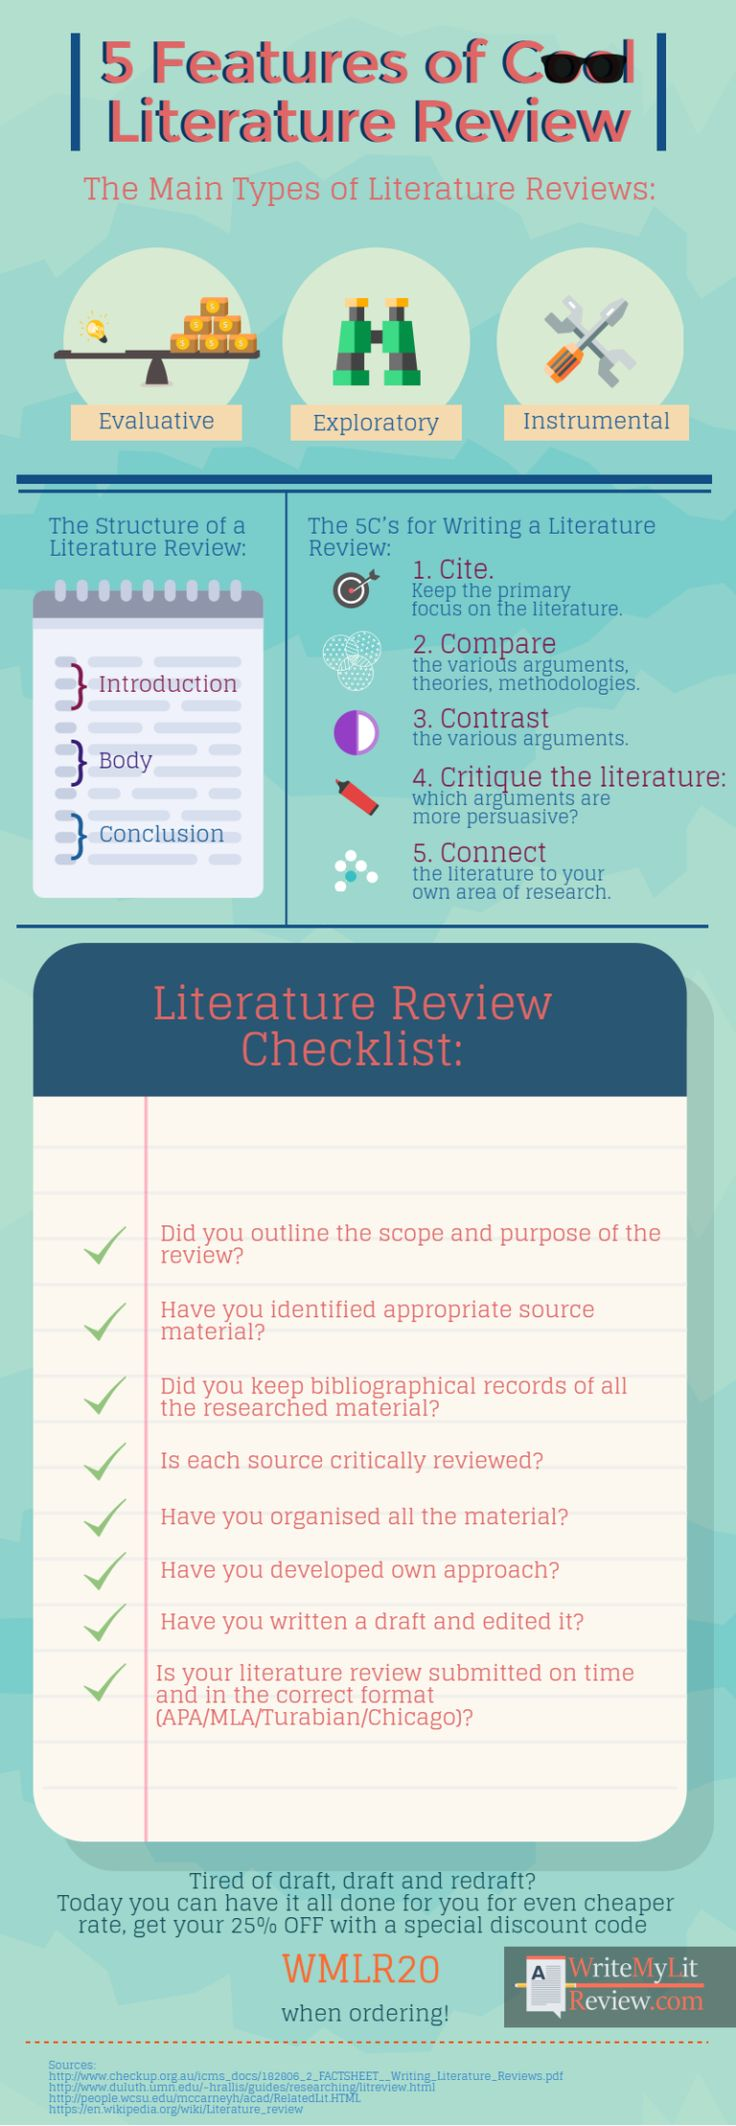 Reviewing literature can be a hard task, but it will get a lot easier after you have checked out these literature review tips http://www.writemylitreview.com/5-features-of-cool-literature-review/